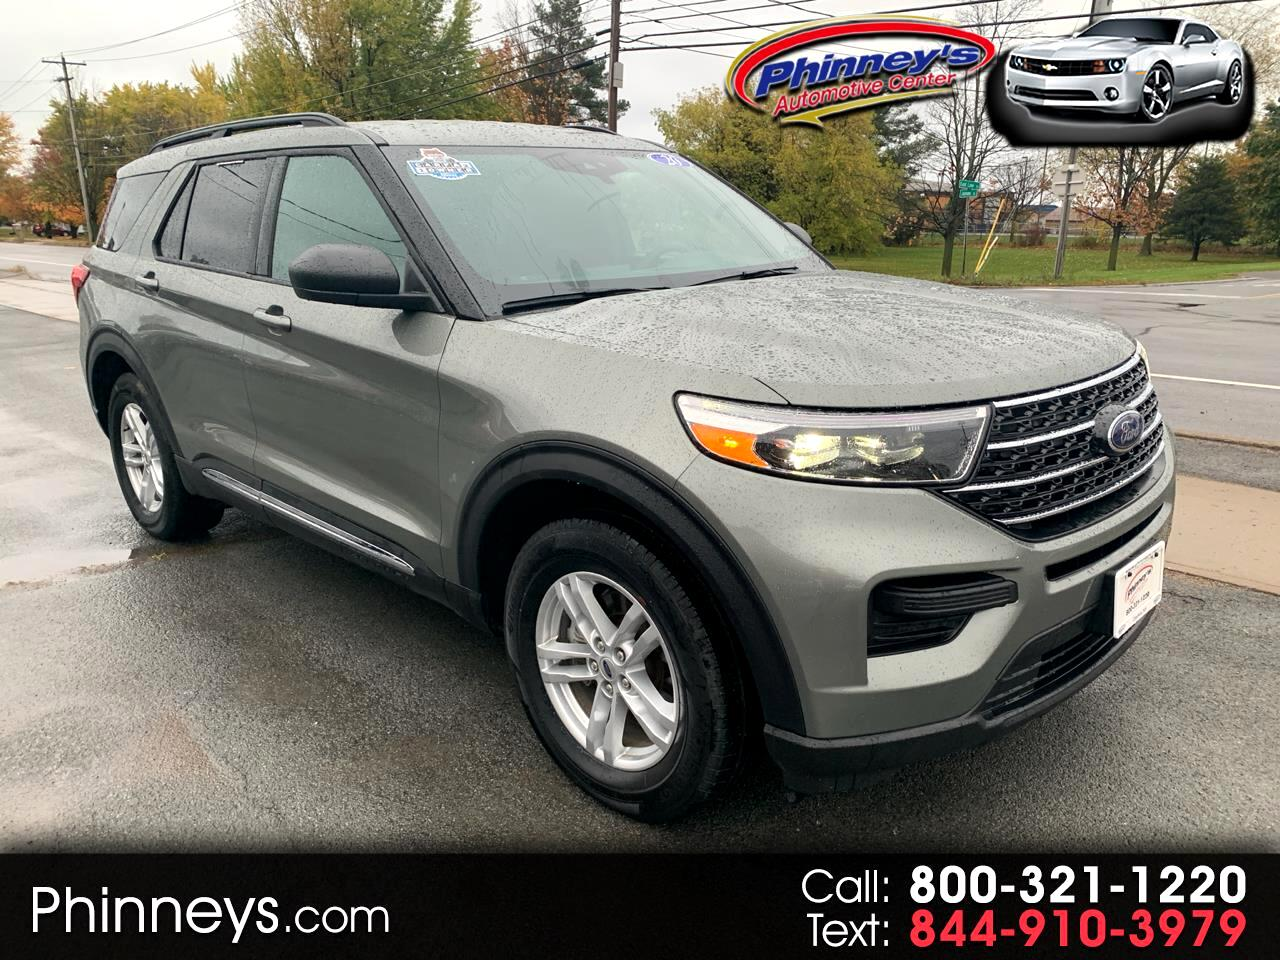 Ford Explorer XLT 4WD 2020